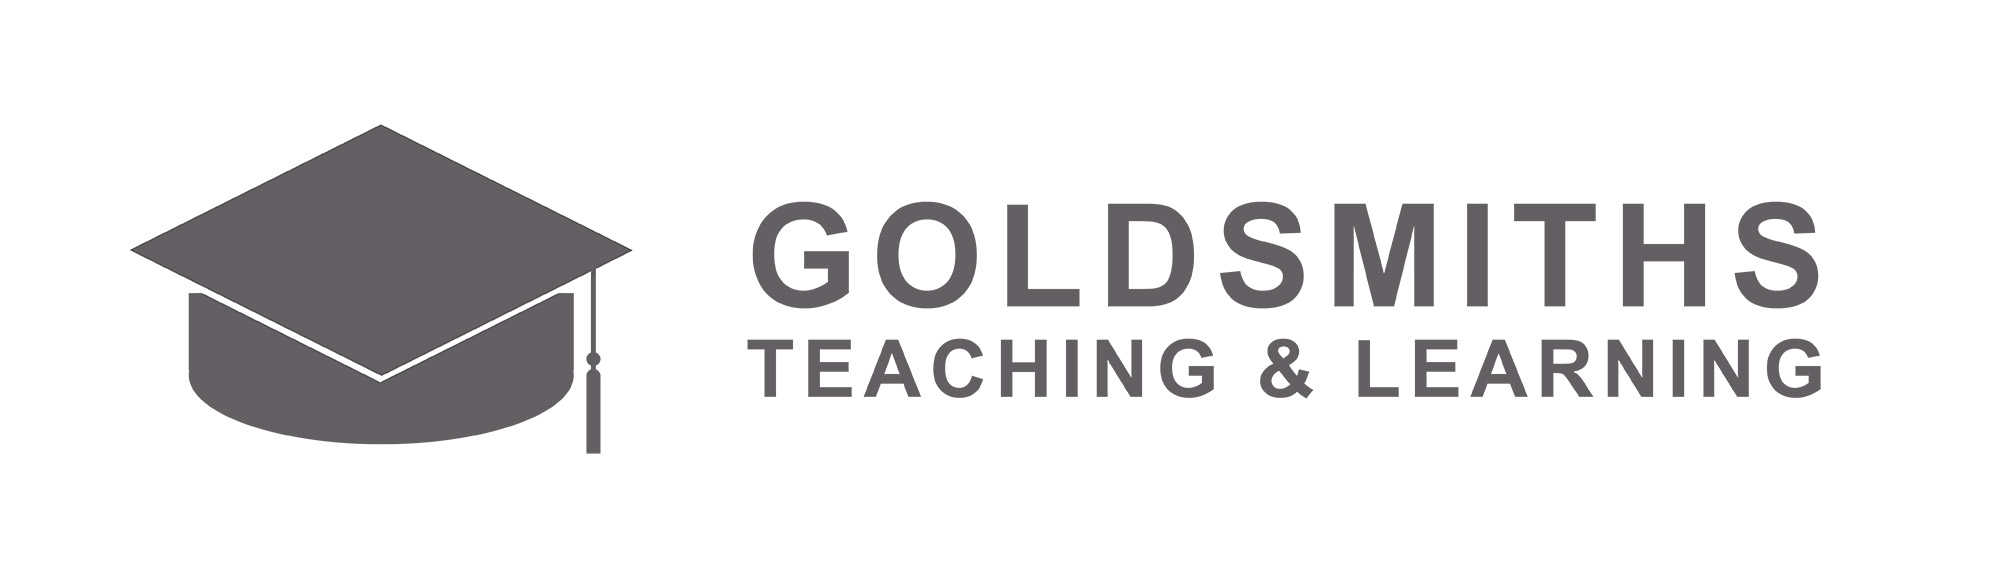 Goldsmiths Teaching and Learning Logo Wide